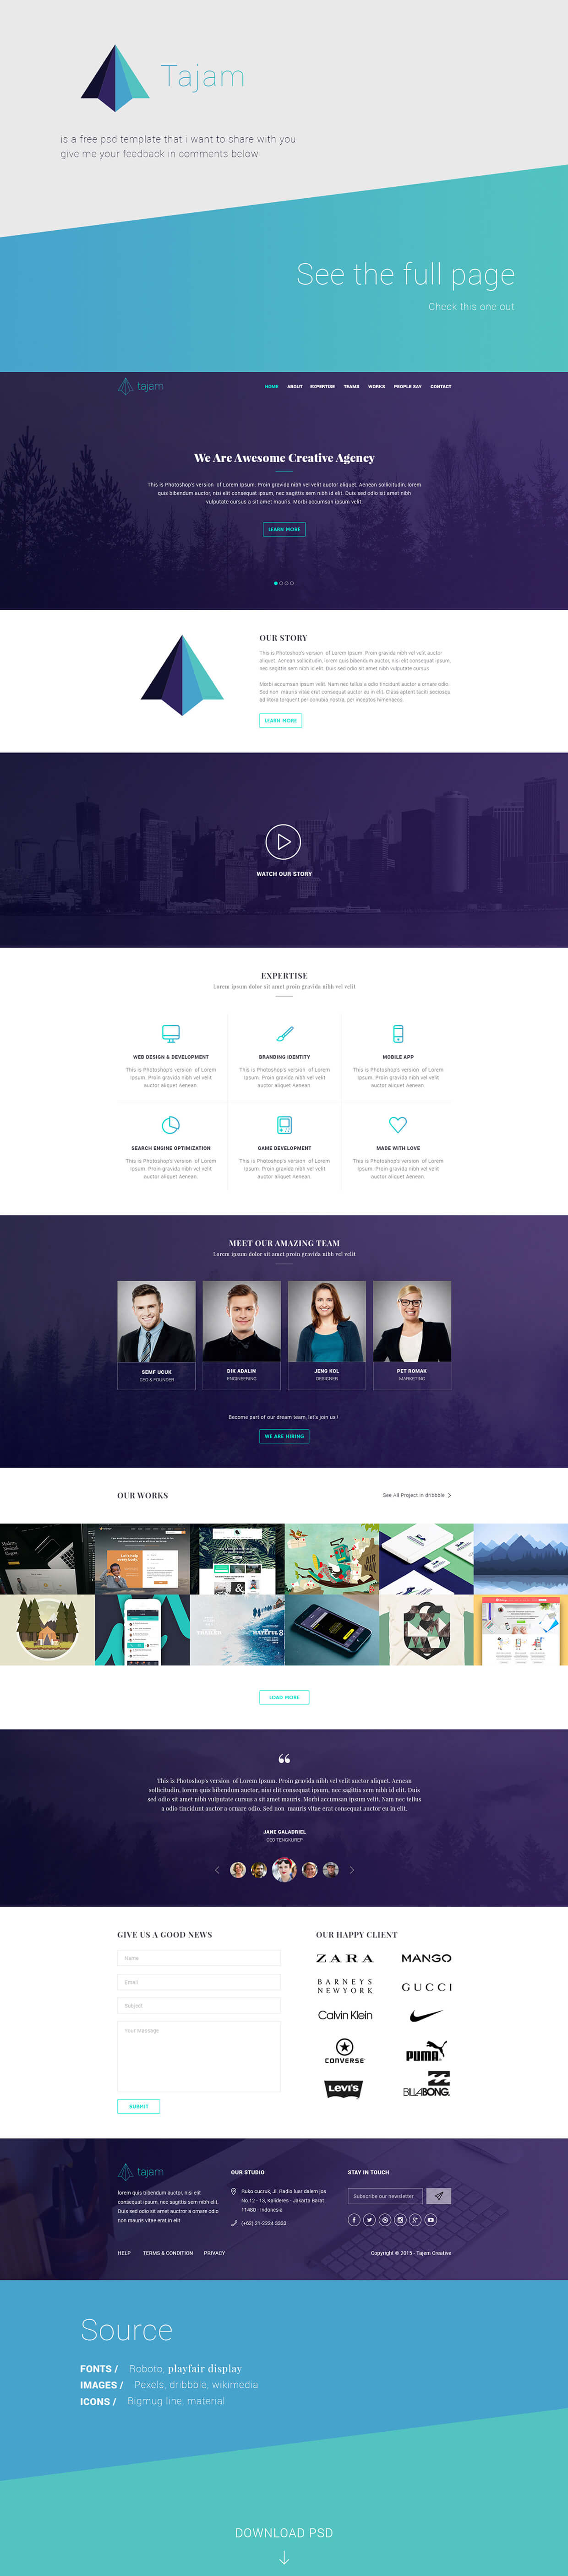 Tajam Agency Template PSD